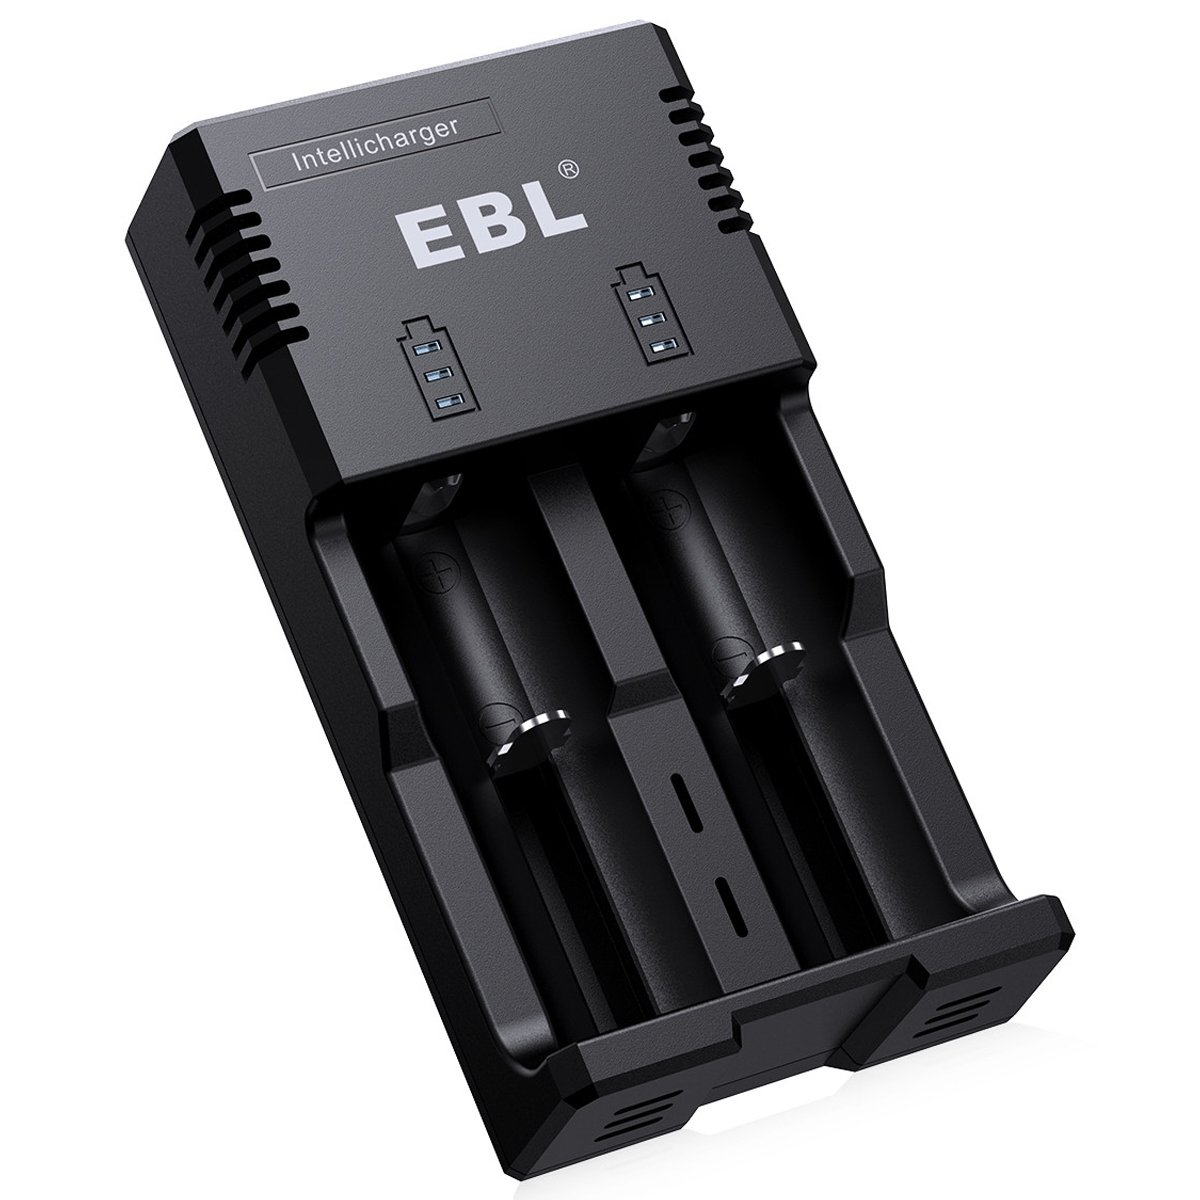 EBL Battery Charger for Li-ion/IMR / Ni-MH/Ni-Cd 26650 22650 18650 18490 18350 17670 17500 17335 16340 RCR123 14500 10440 AA AAA AAAA C Rechargeable Battery with iQuick Technology - ETL Certified